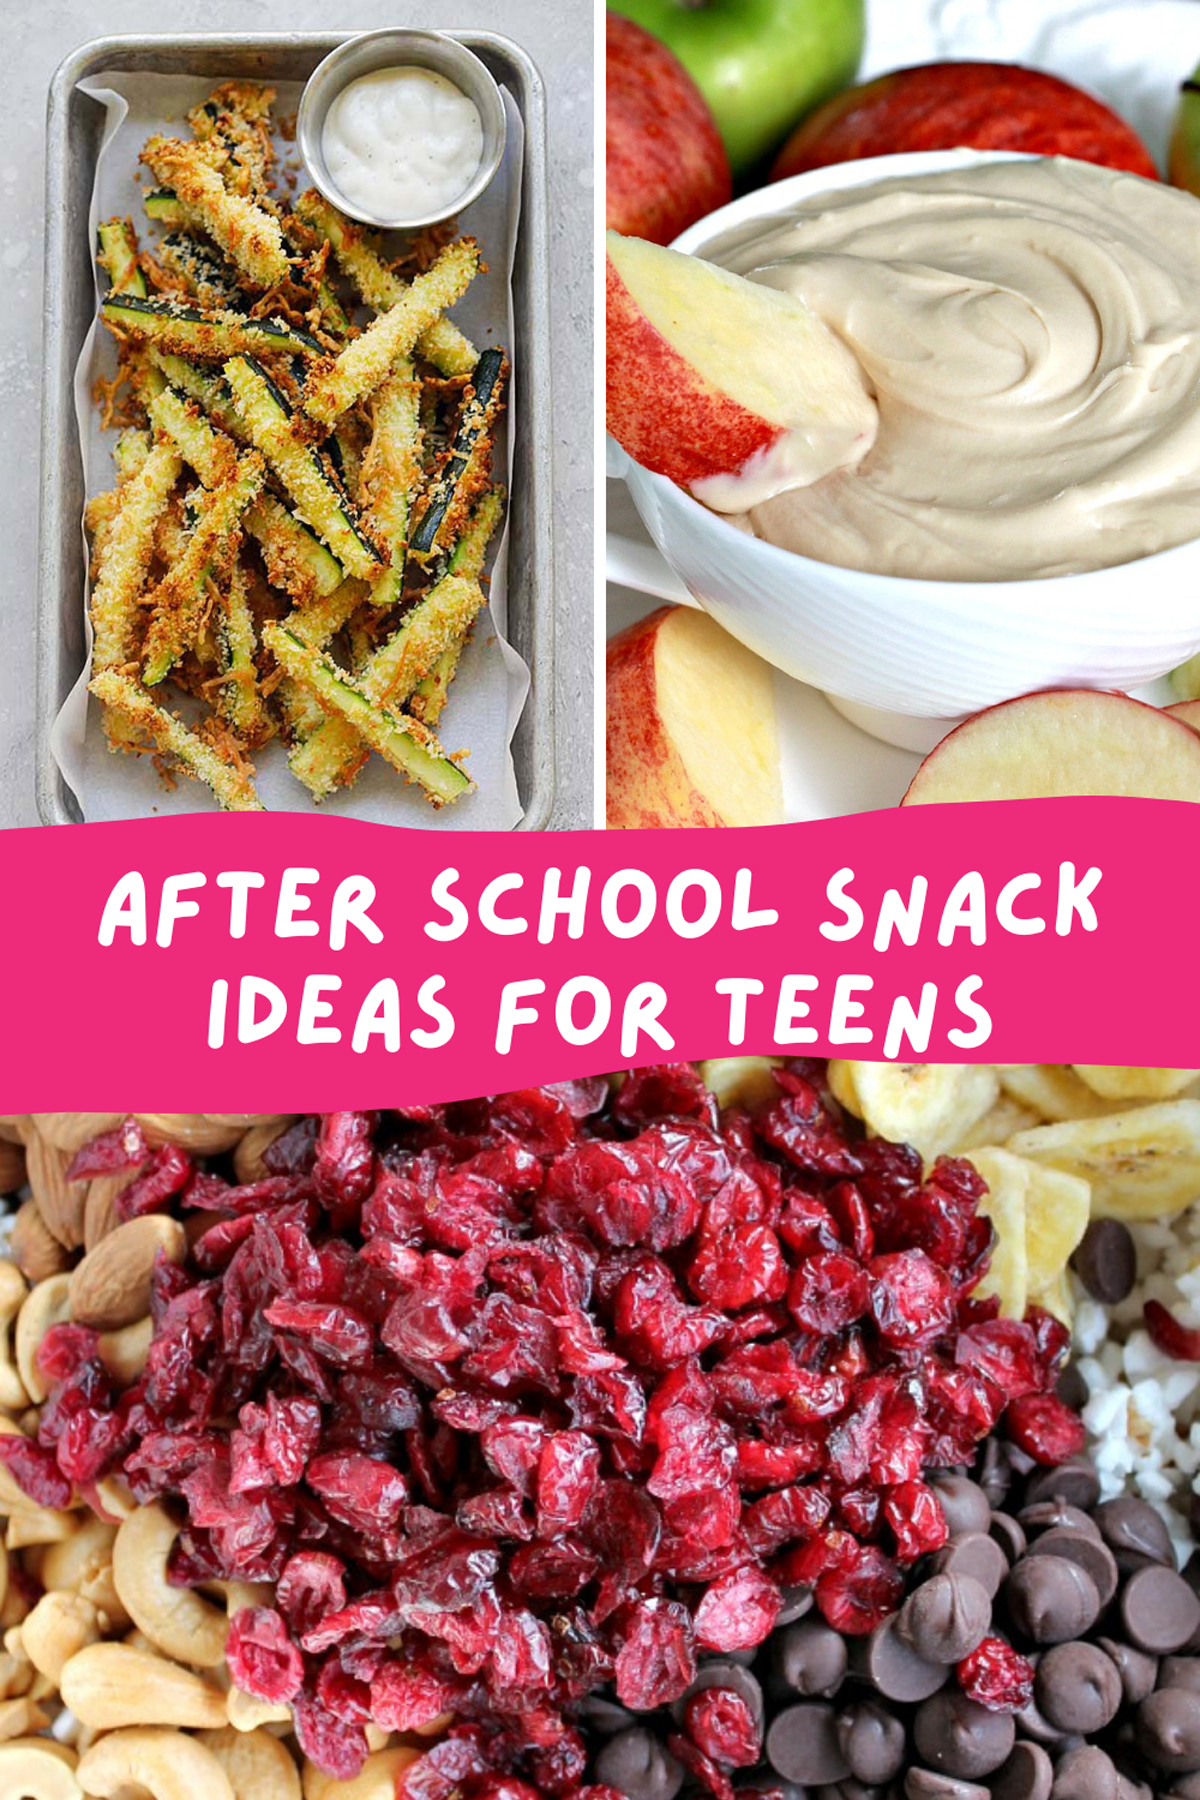 After School Snack Ideas for Teens